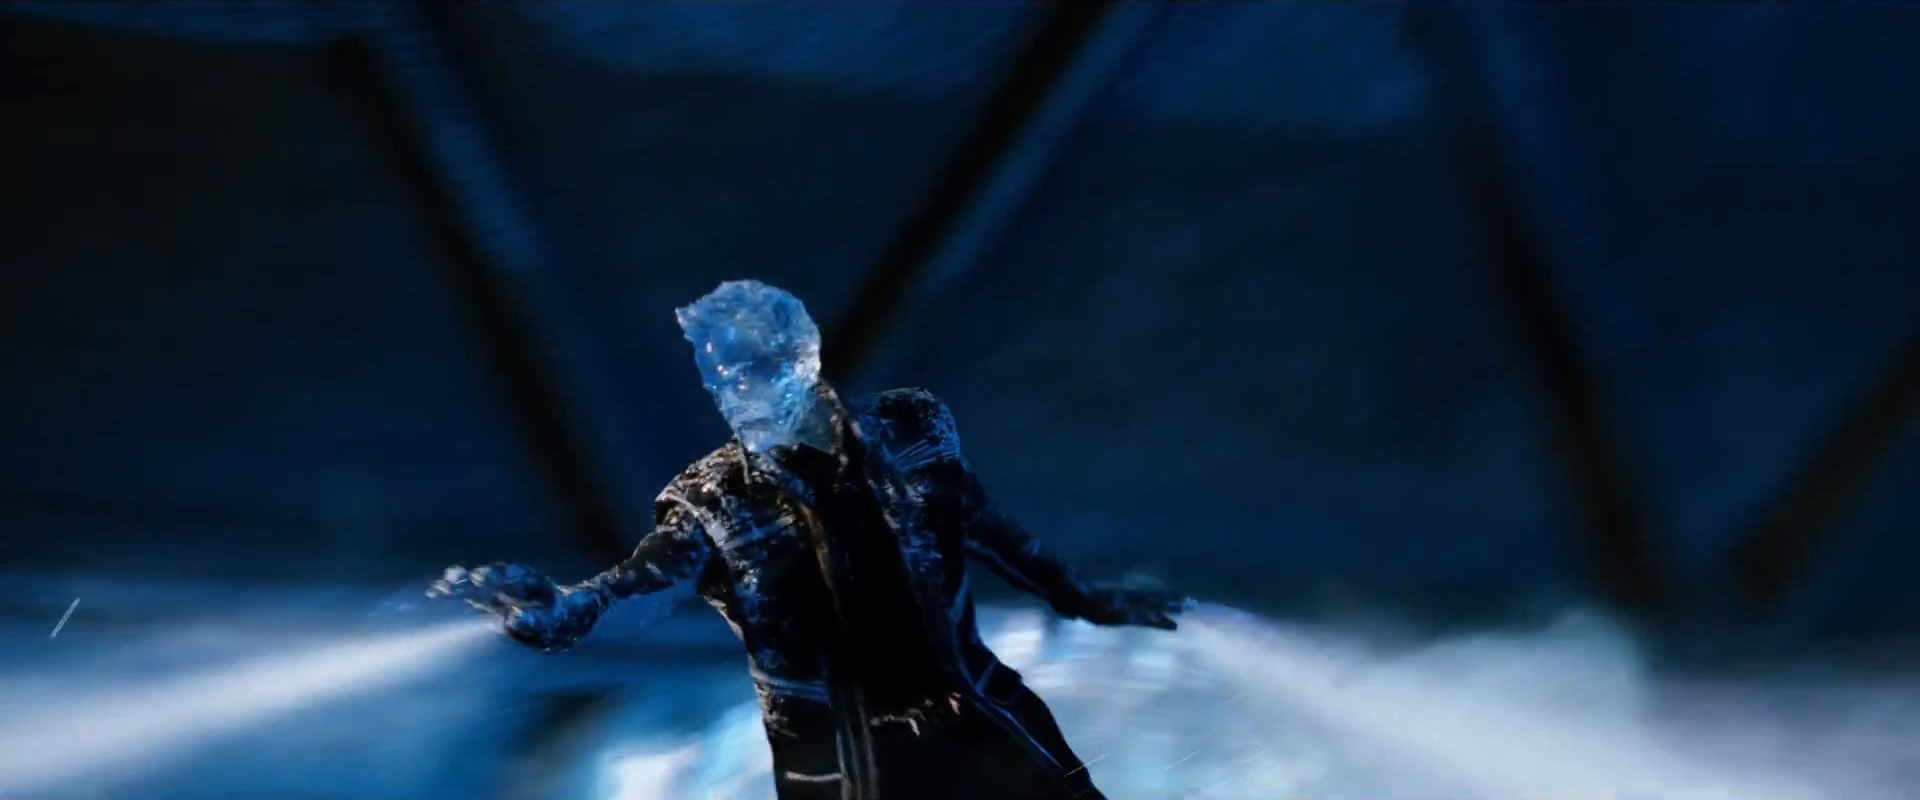 iceman x men days of future past - photo #11